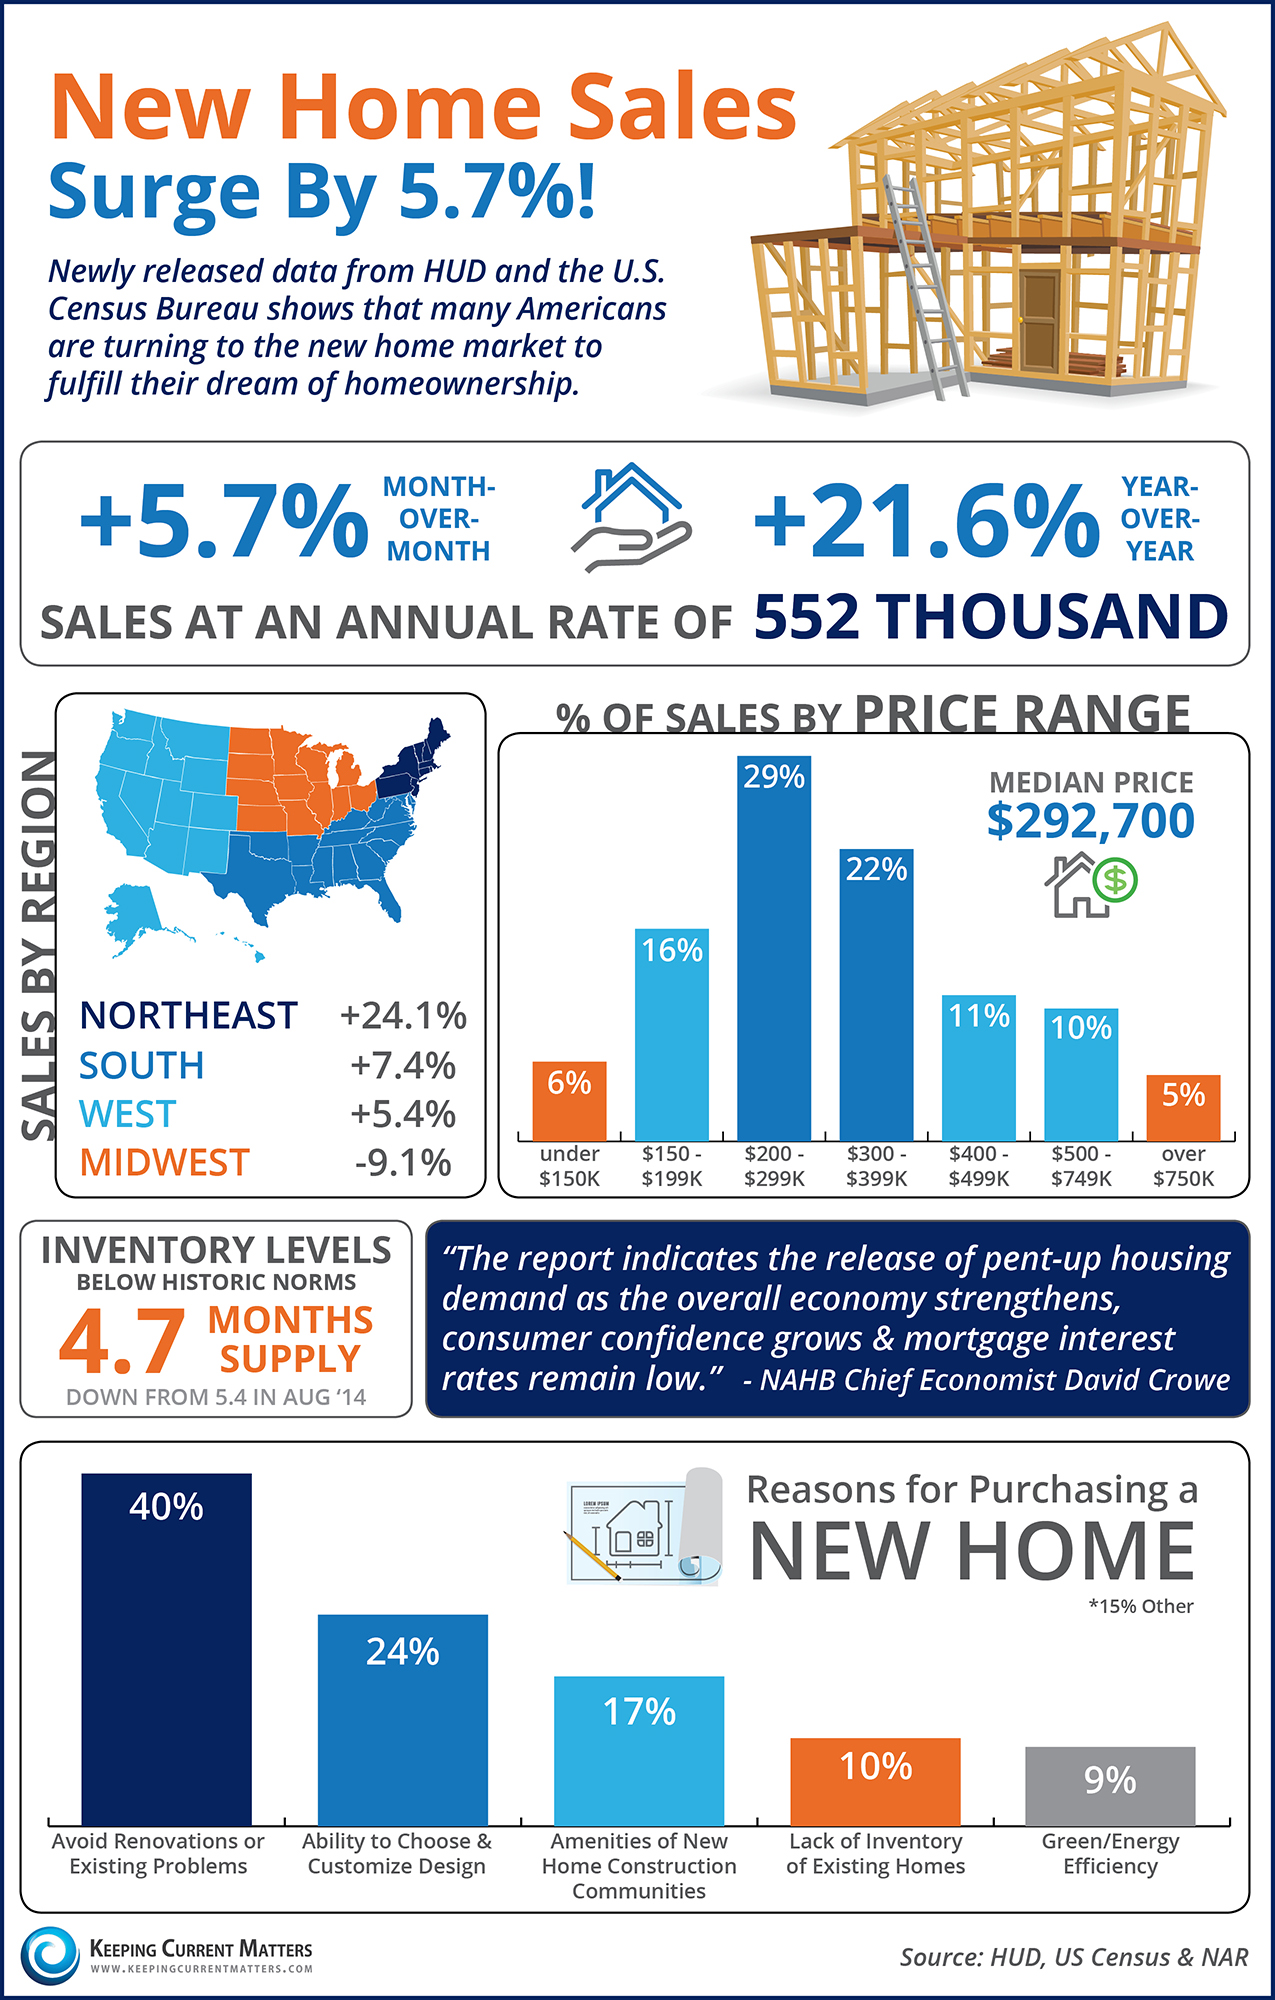 New Home Sales Surge By 5.7%! [INFOGRAPHIC] | Keeping Current Matters